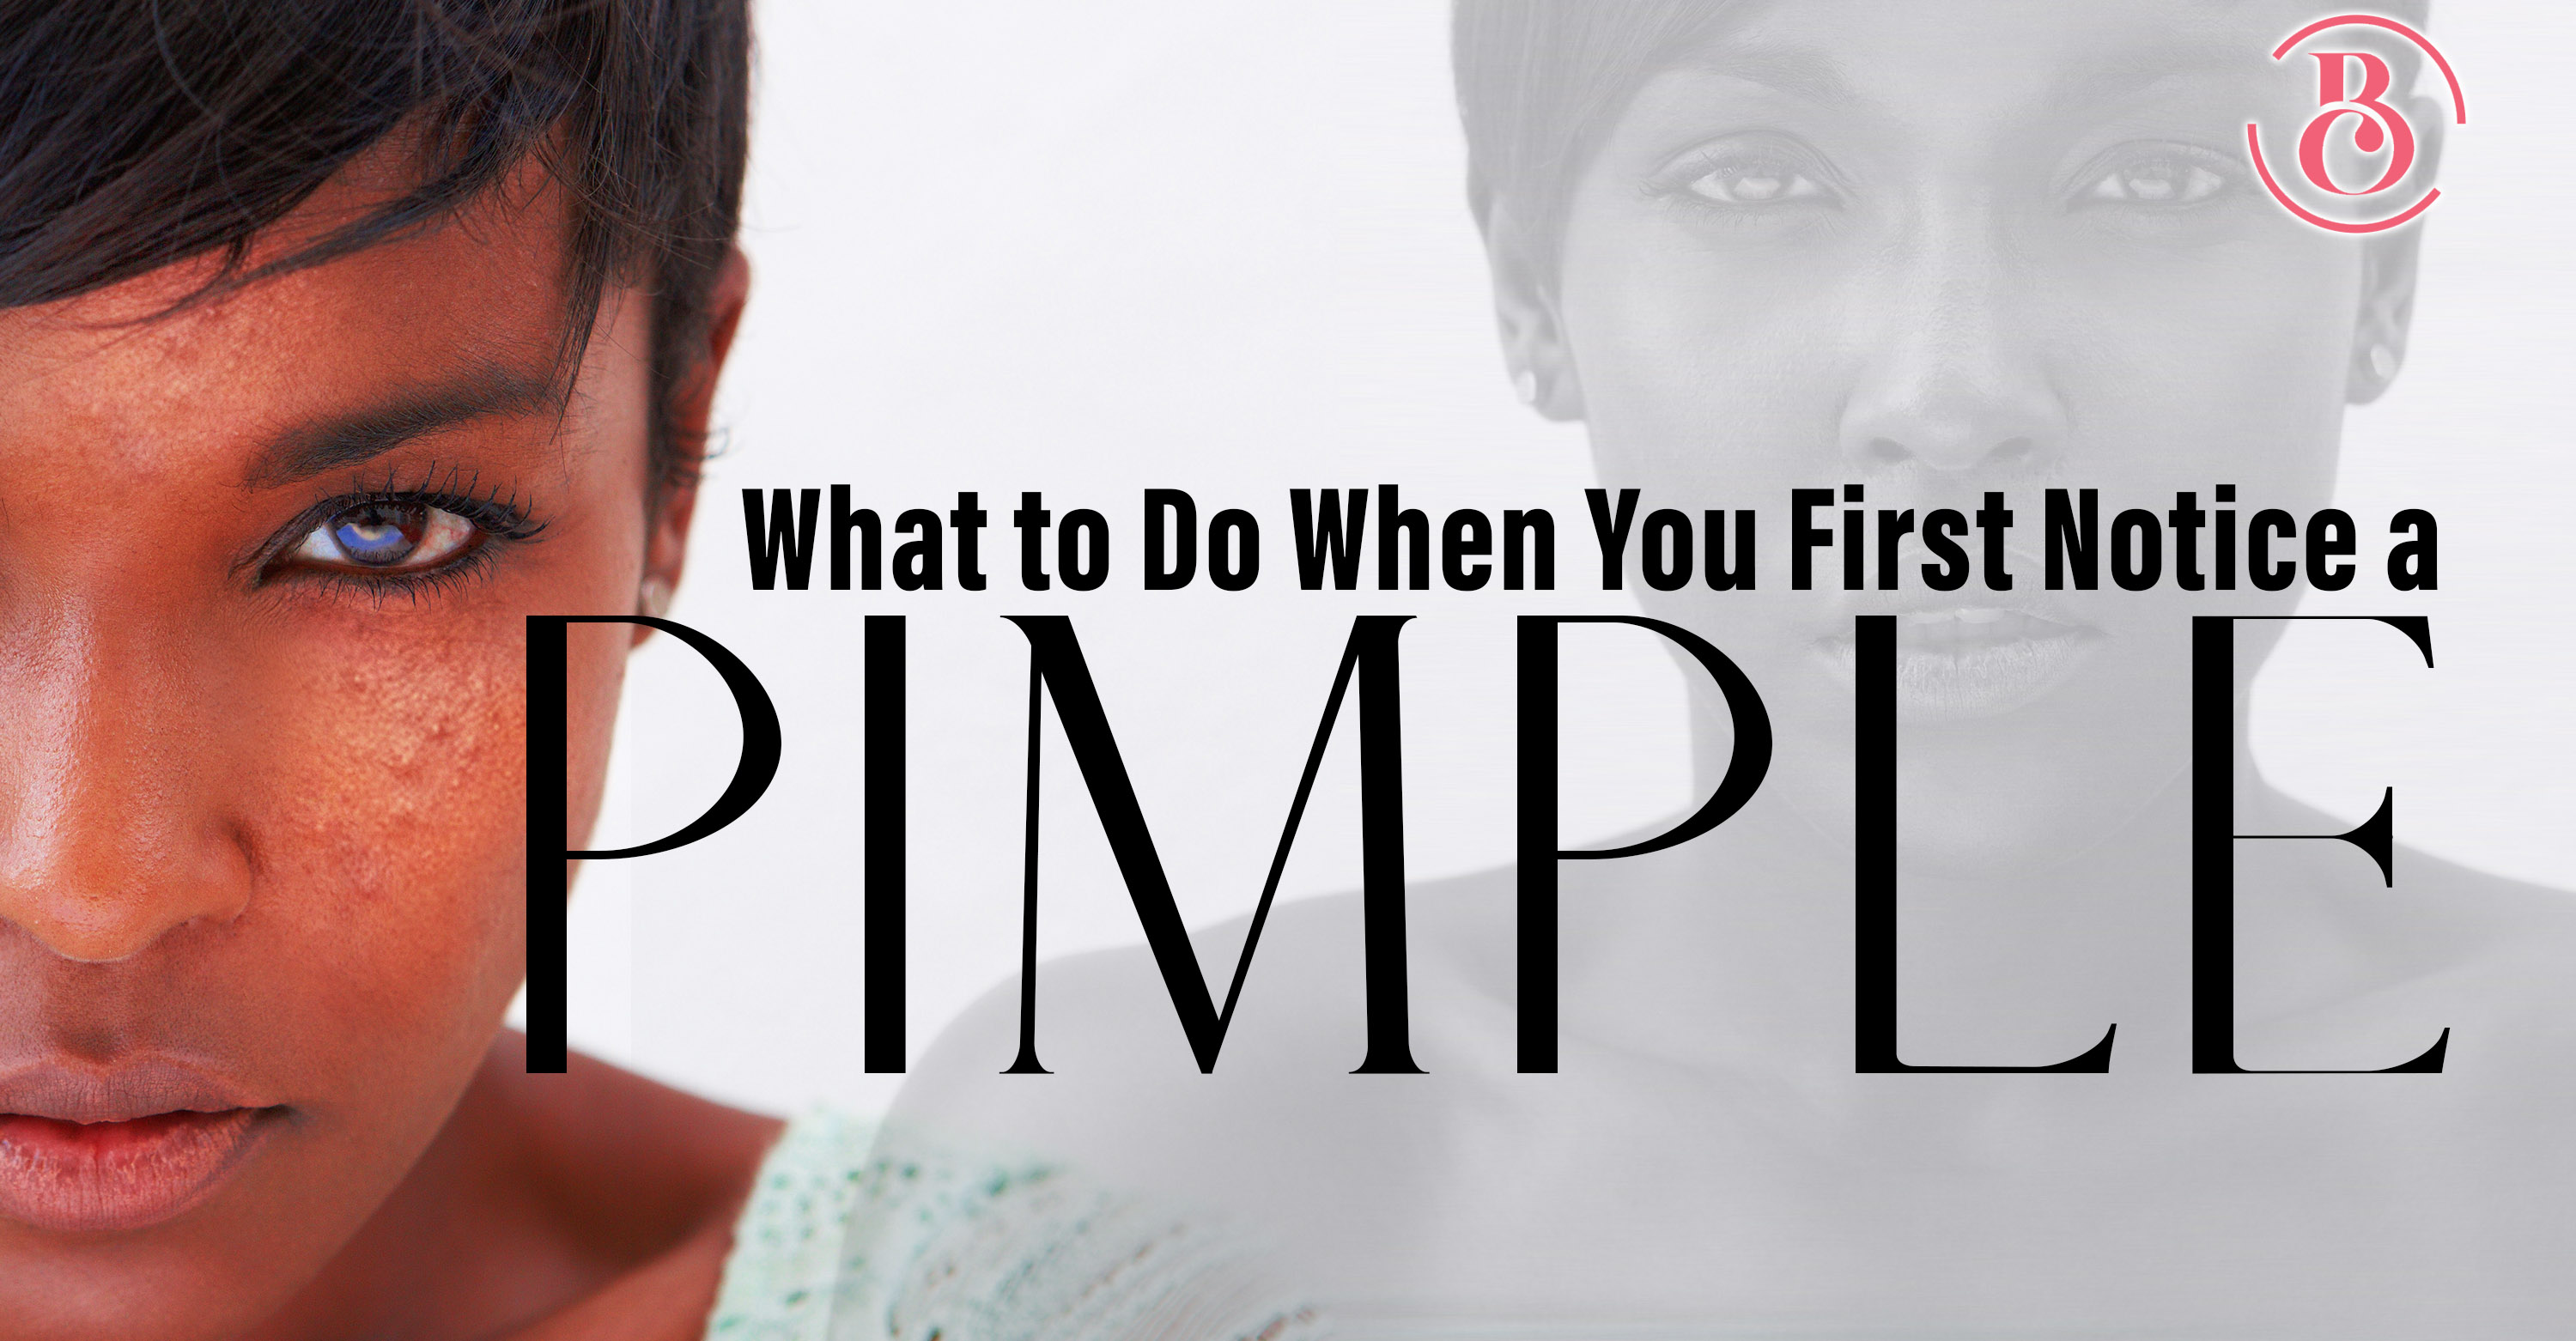 What to Do When You First Notice a Pimple